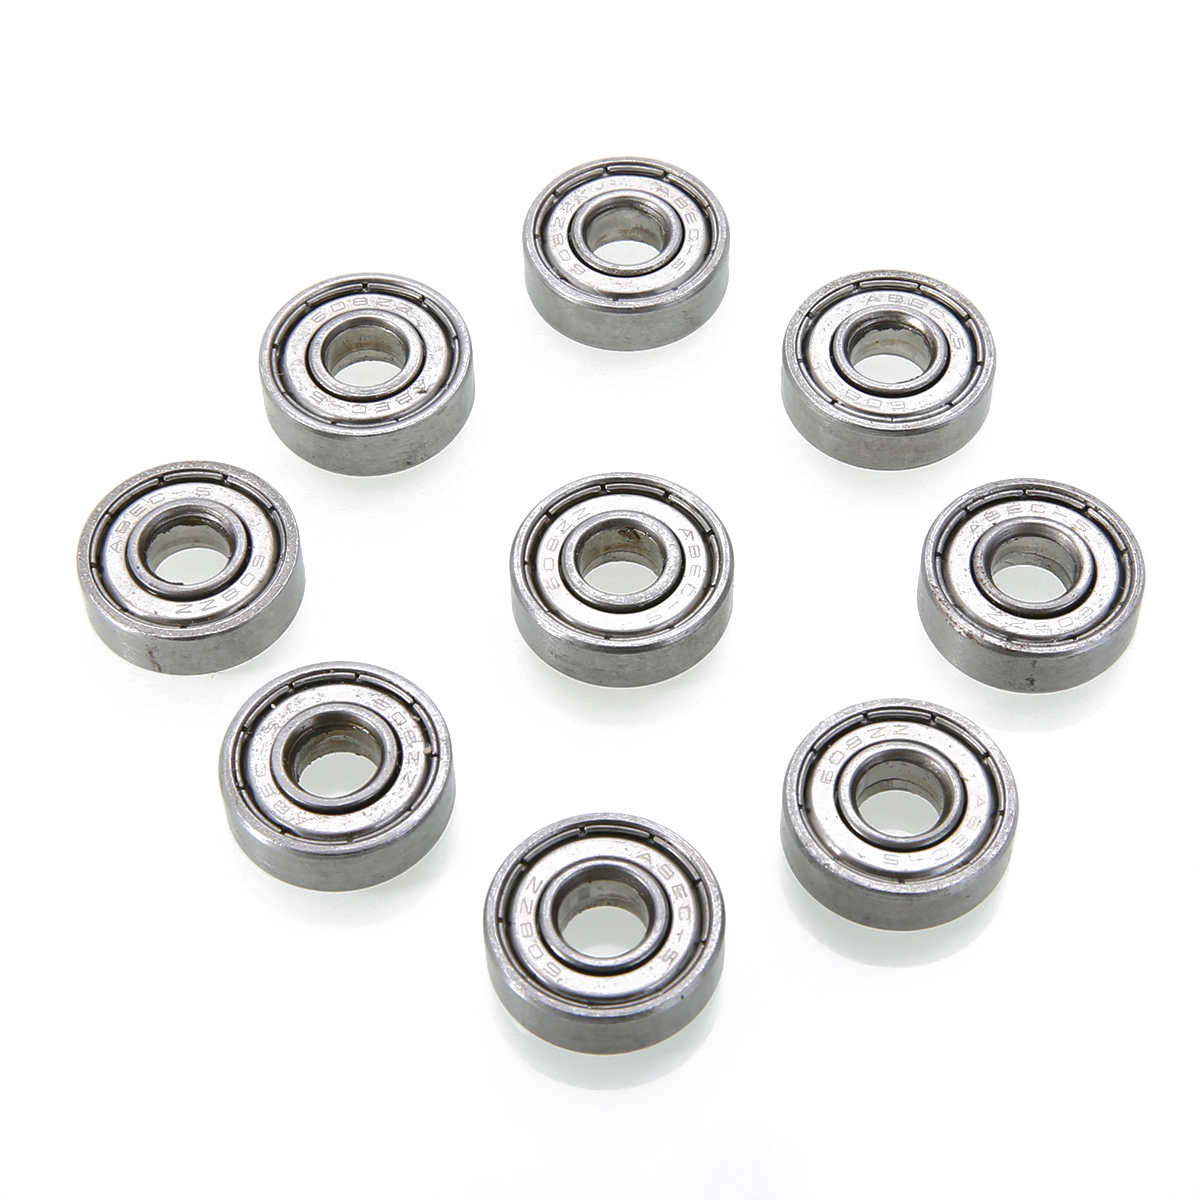 10pcs 608zz Deep Groove Steel Ball Bearings High Precision Bearing For Skateboard Roller Blade Scooter Inline Skating Mayitr gcr15 6024 zz or 6024 2rs 120x180x28mm high precision deep groove ball bearings abec 1 p0 1 pcs